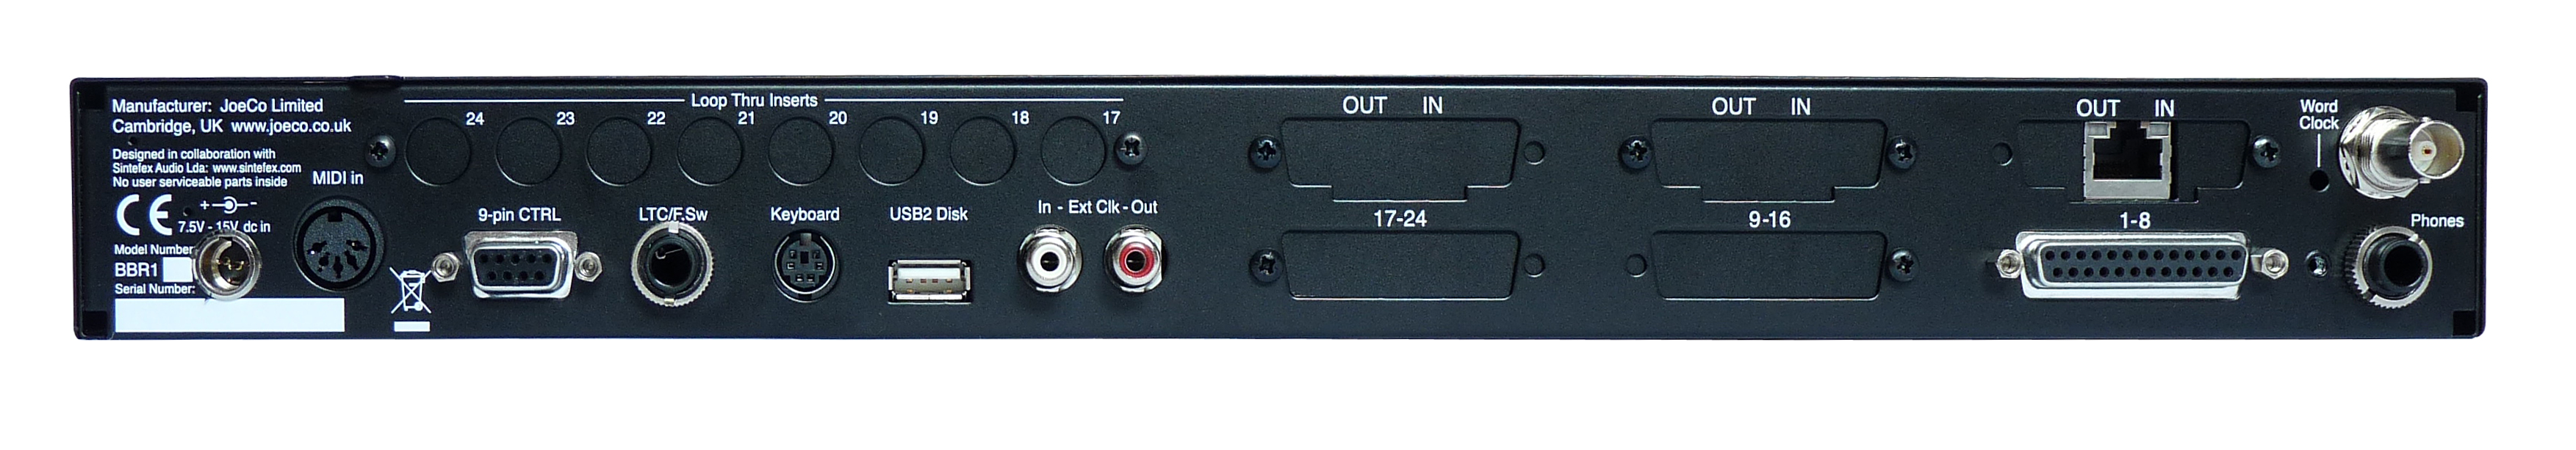 JoeCo Blackbox Recorder - BBR1DANTE - Rear Panel - HR